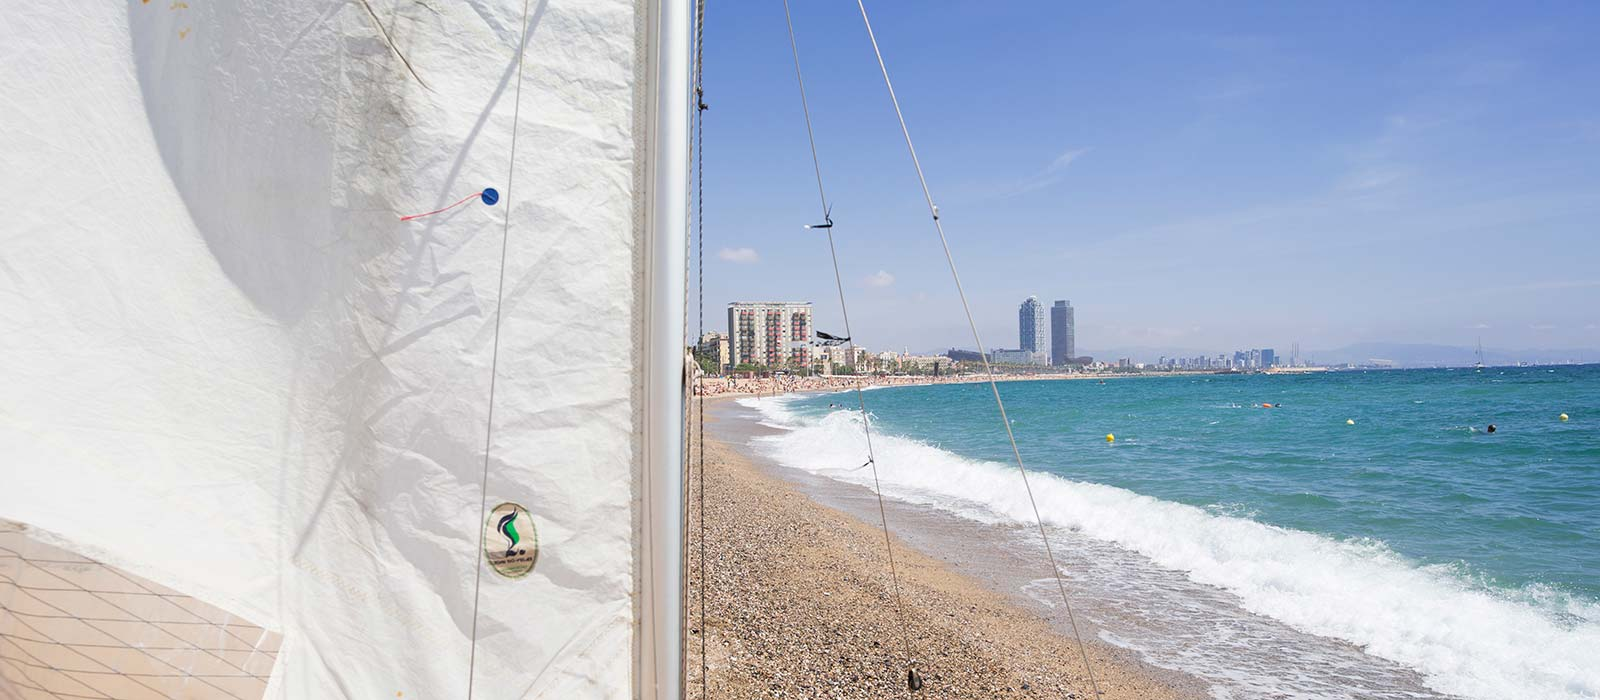 Barceloneta beach sailing boat